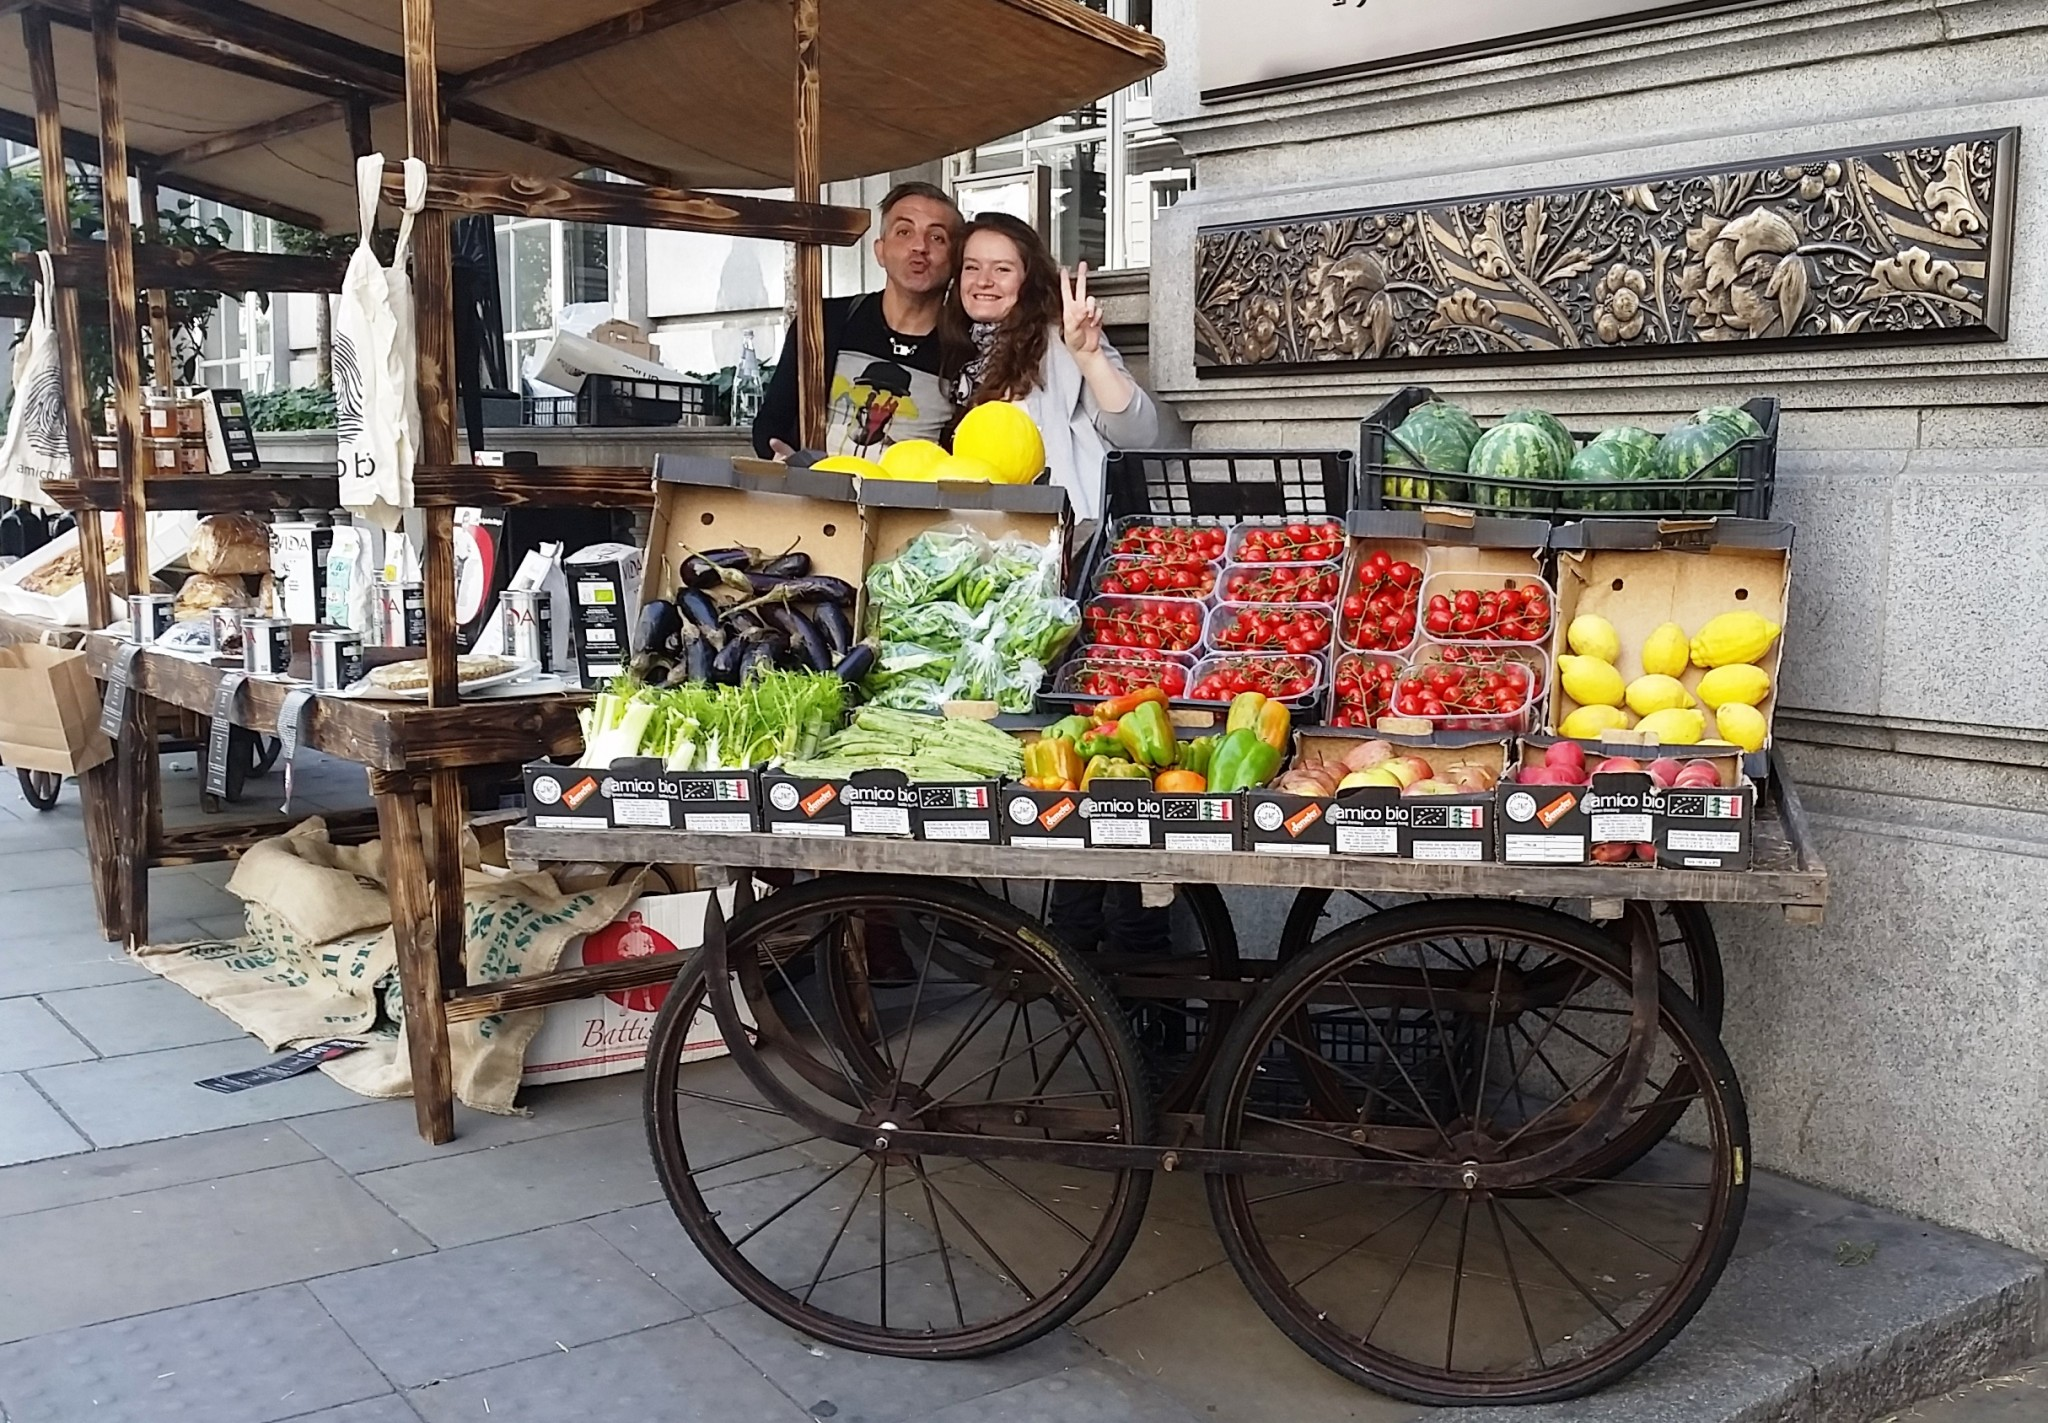 A 5 Star Market Experience at The Slow Food & Living Market at